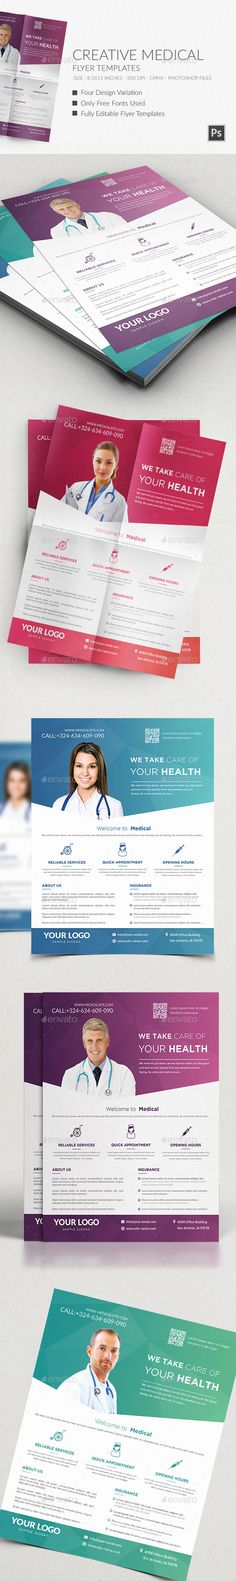 Medical Flyers Template PSD | Buy and Download: http://graphicriver.net/item/medical-flyers-templates-/9641098?WT.oss_phrase=&WT.oss_rank=14&WT.z_author=Hazemtawfik&WT.ac=search_thumb&ref=ksioks